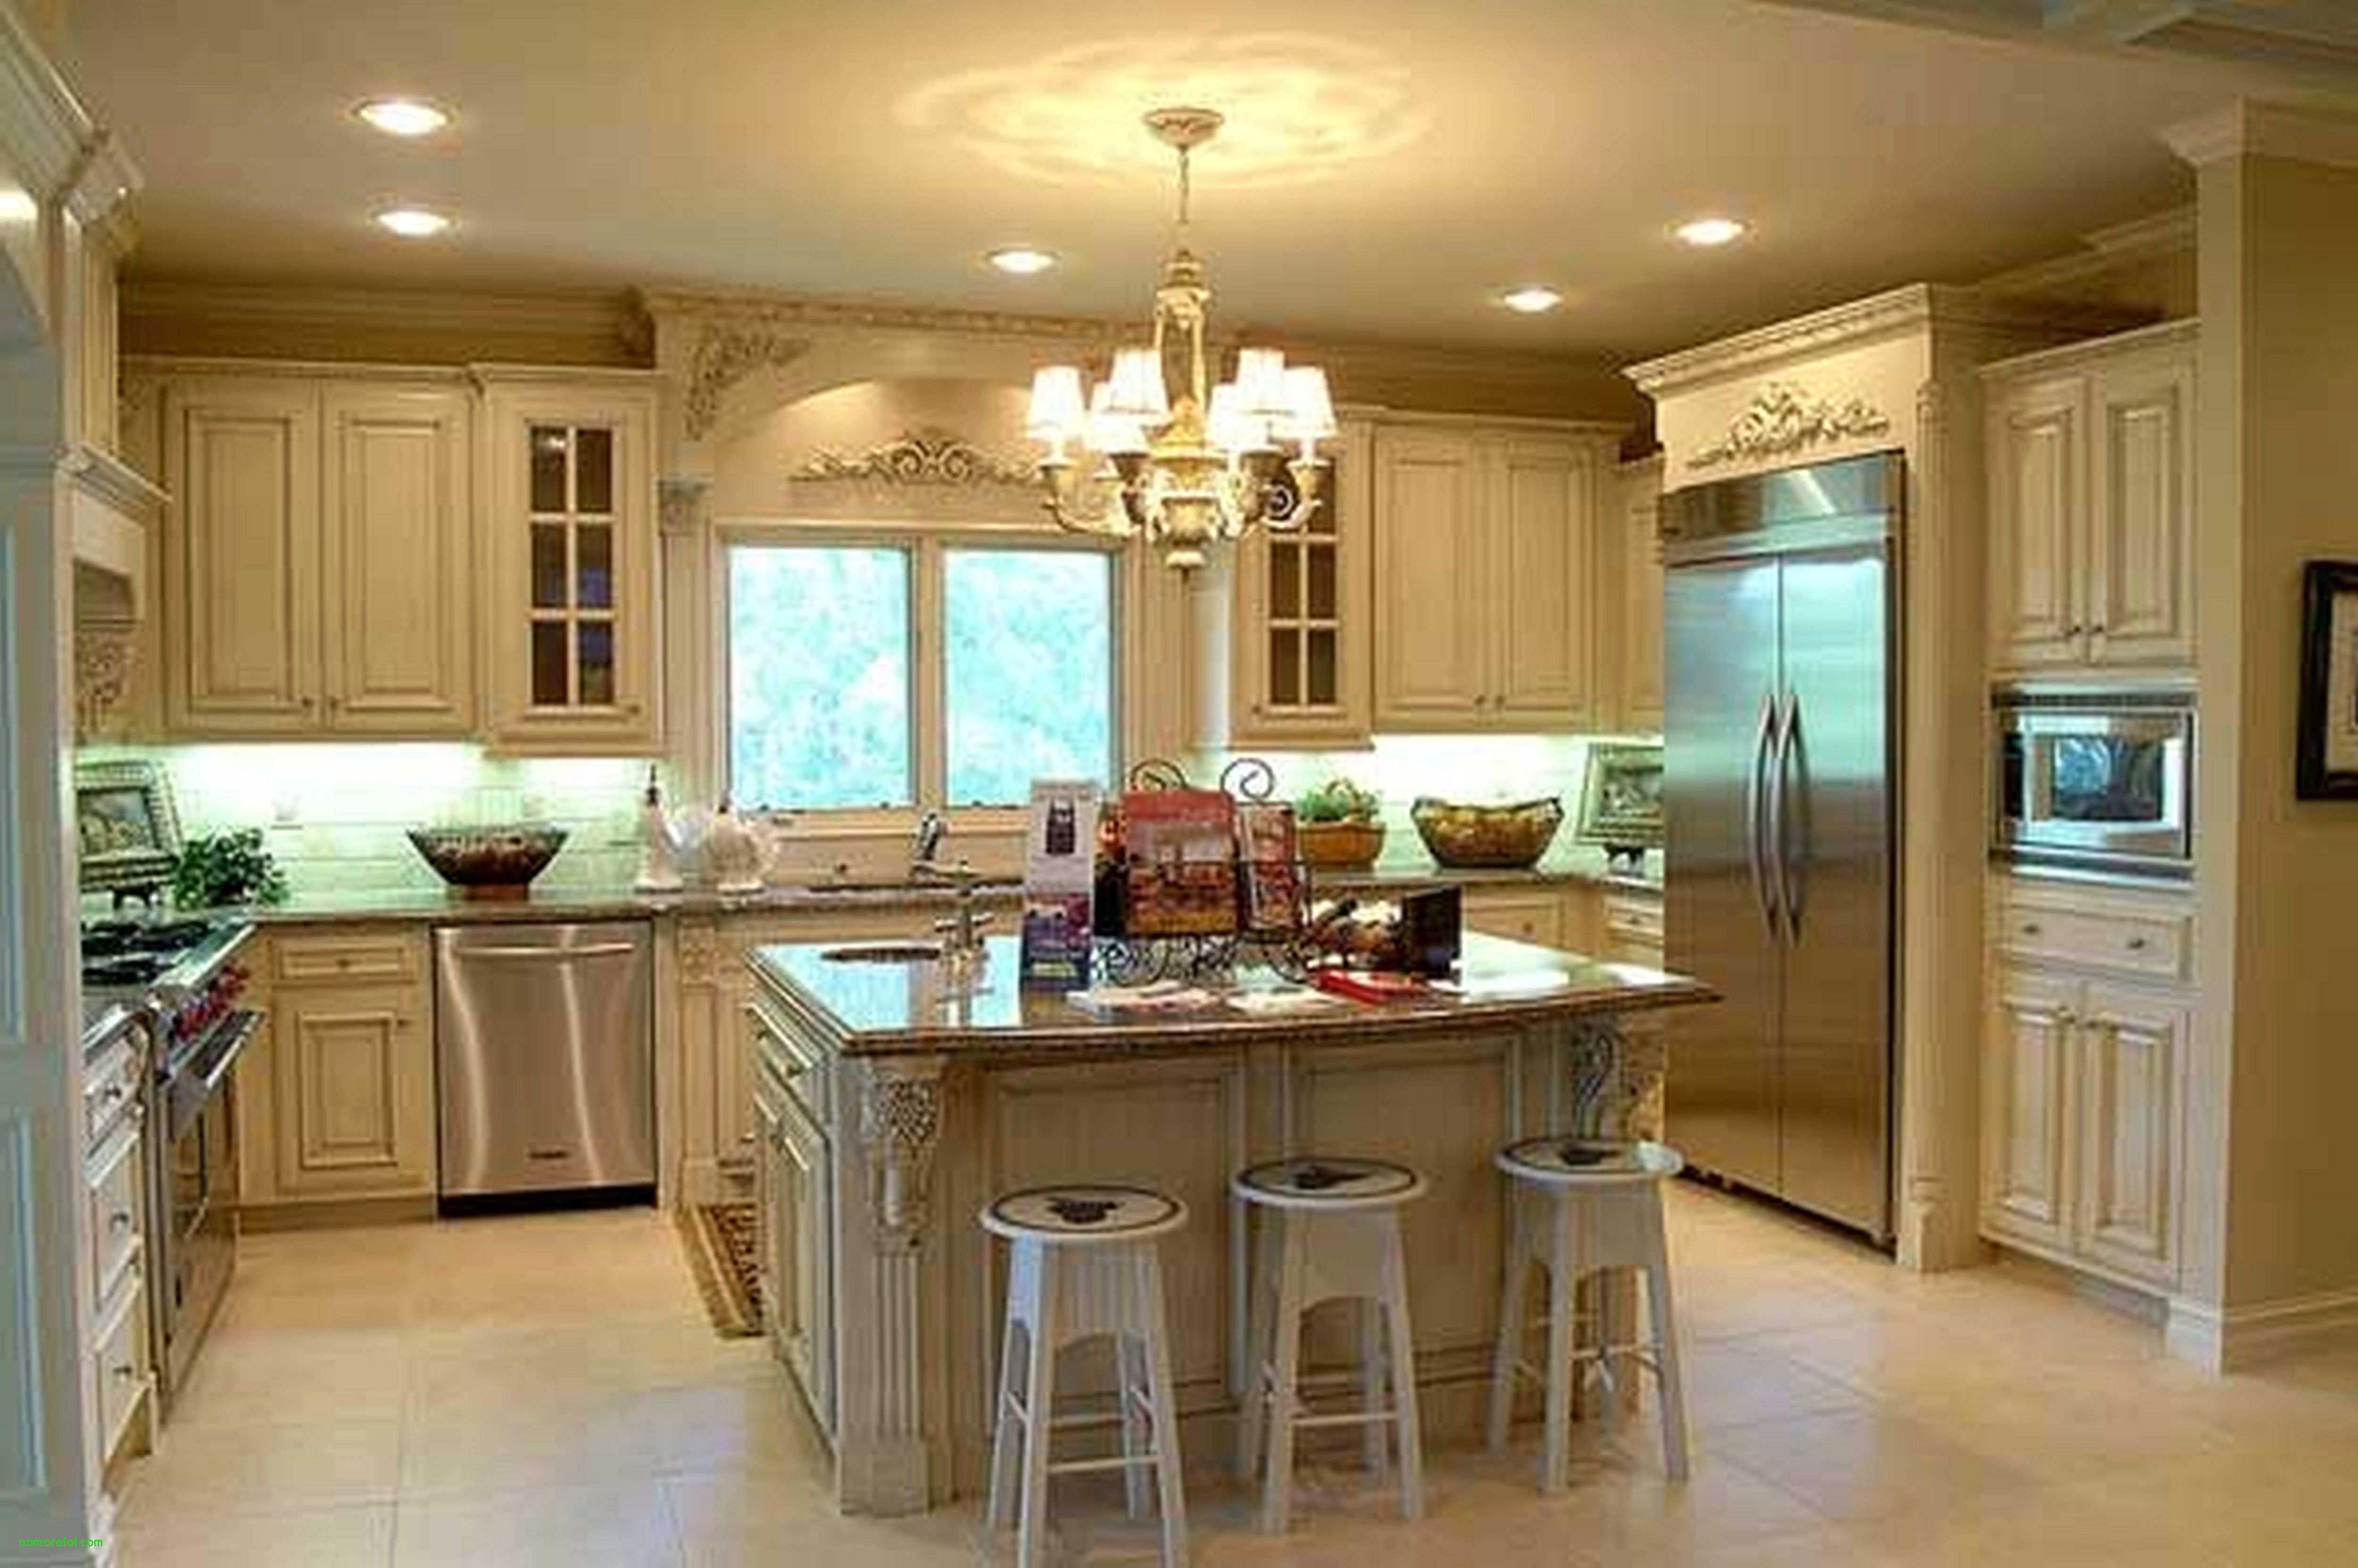 Kitchen Design Ideas Country Inspirational With No Top Cabinets Home Plan  With Top